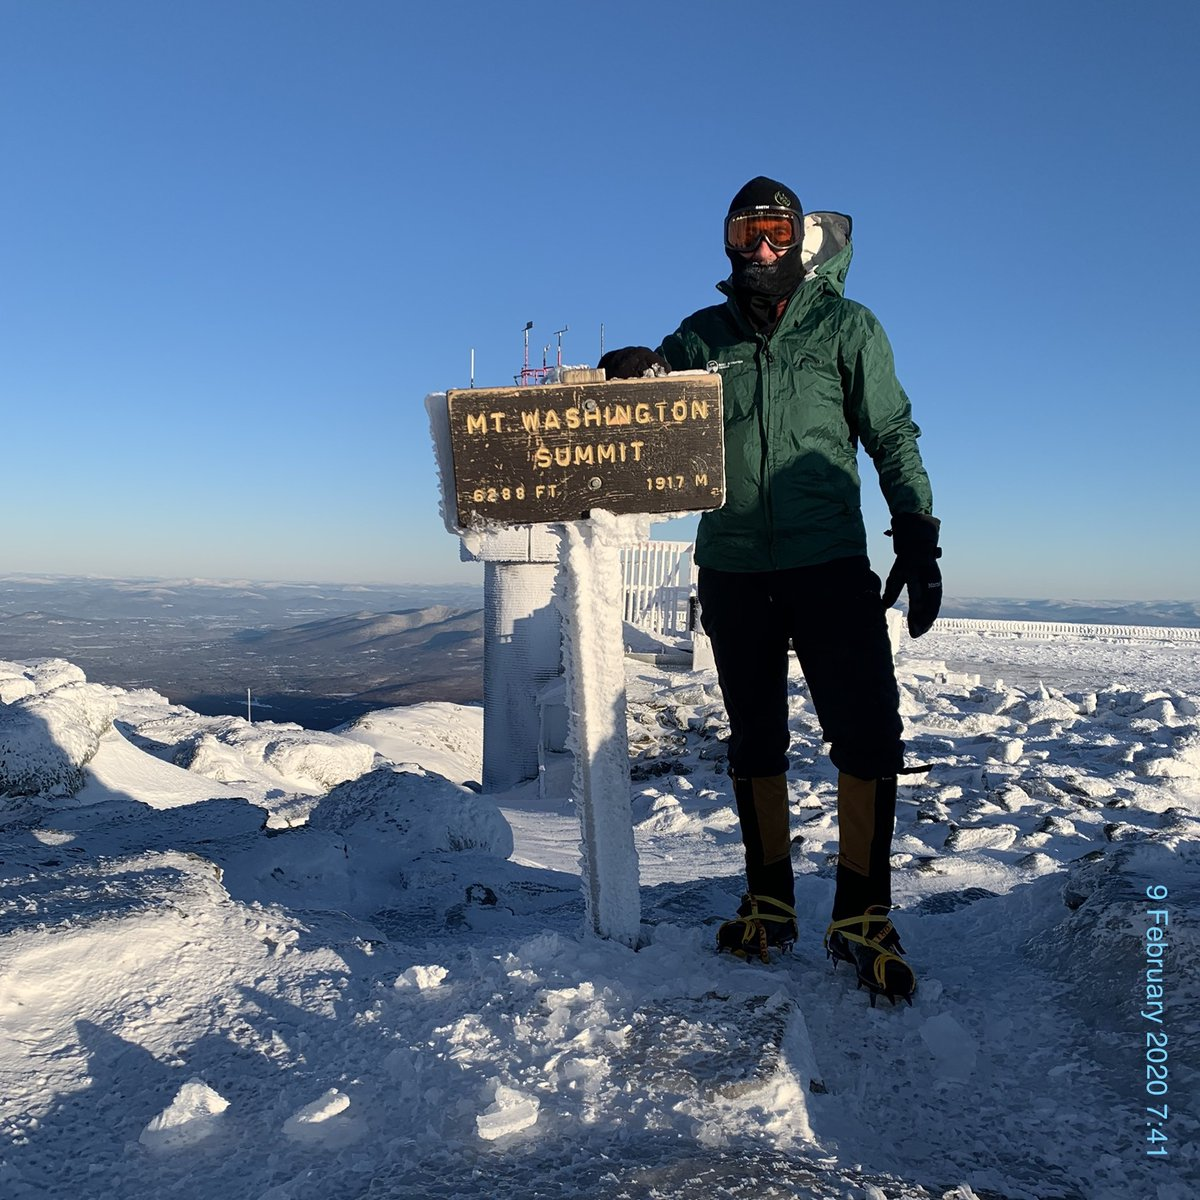 Frightening ascent turned magnificent to Mount Washington summit in unpredictable winter conditions